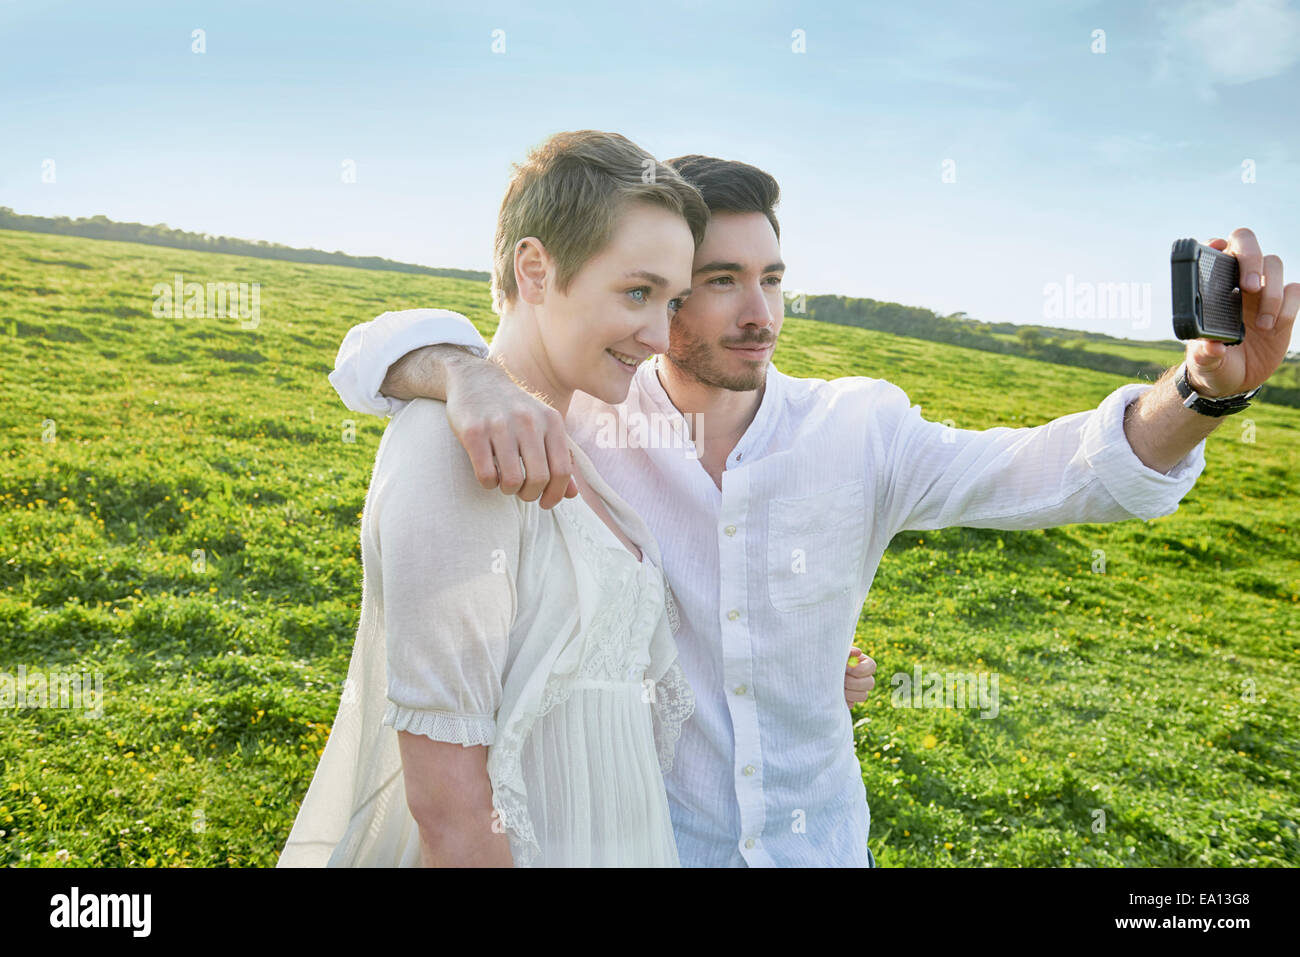 Young couple in field posing for selfie on smartphone - Stock Image